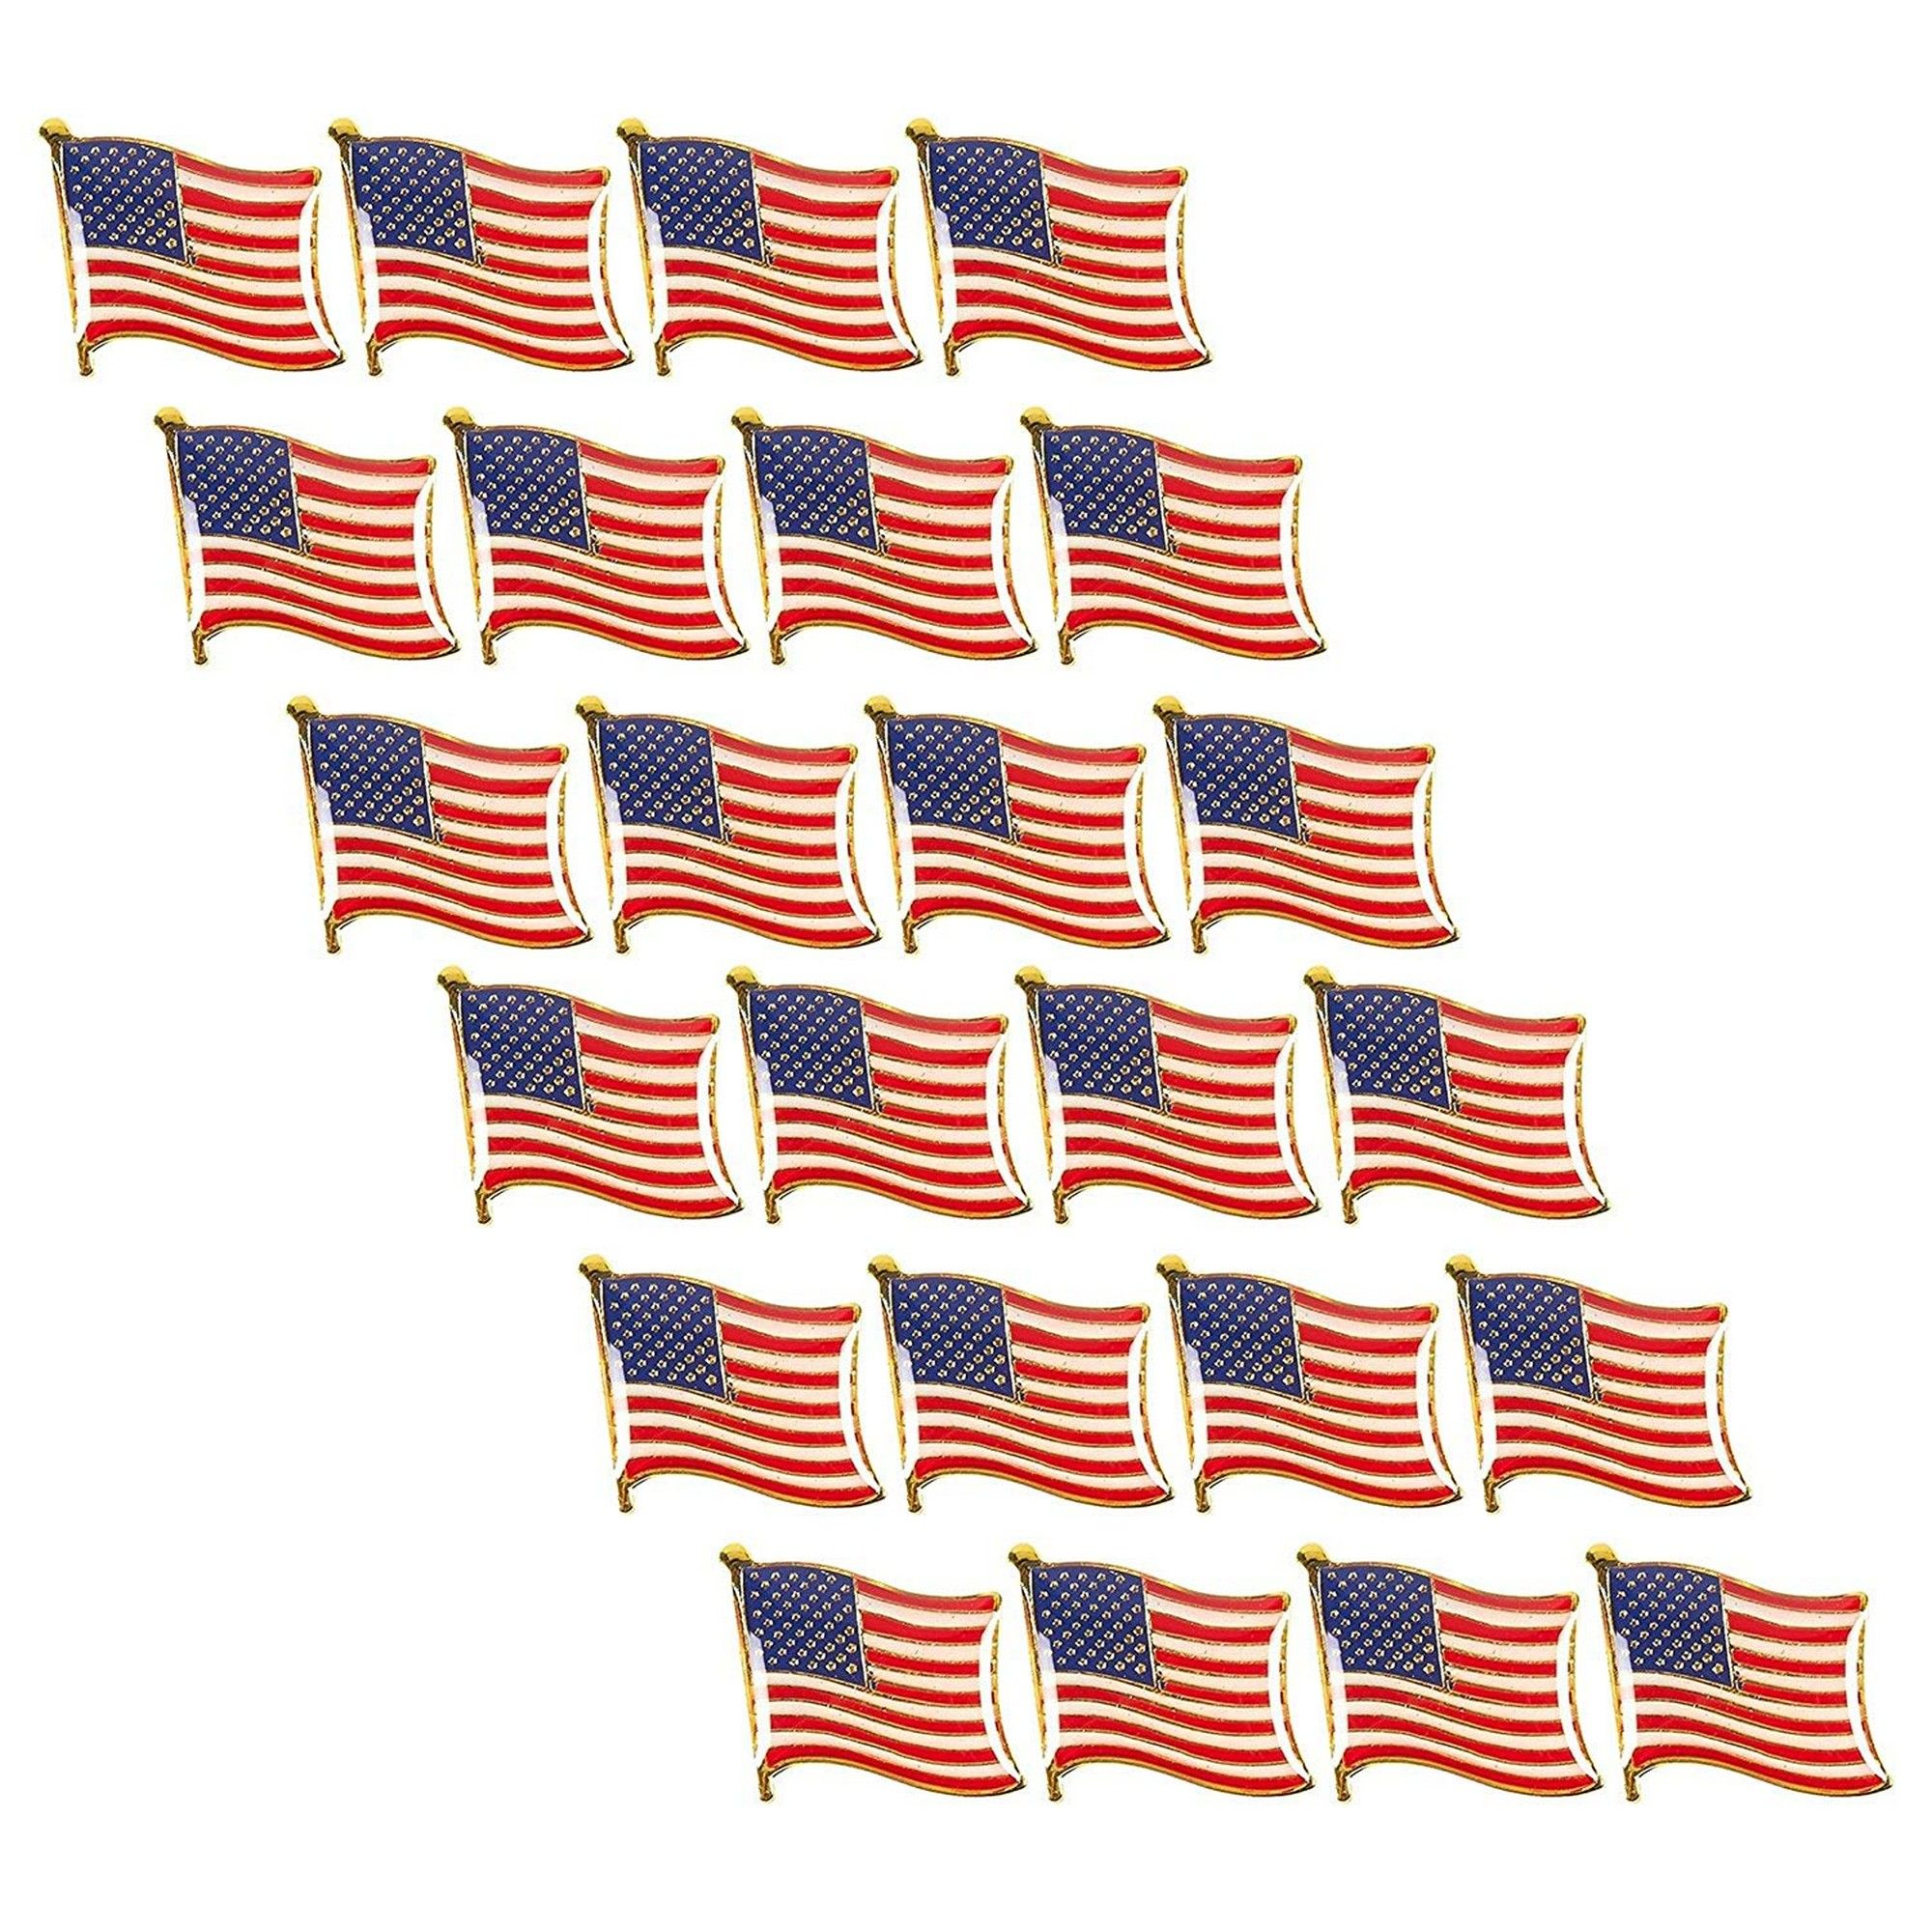 Canada //American Flag Lapel pin flags attached very nice NEW!